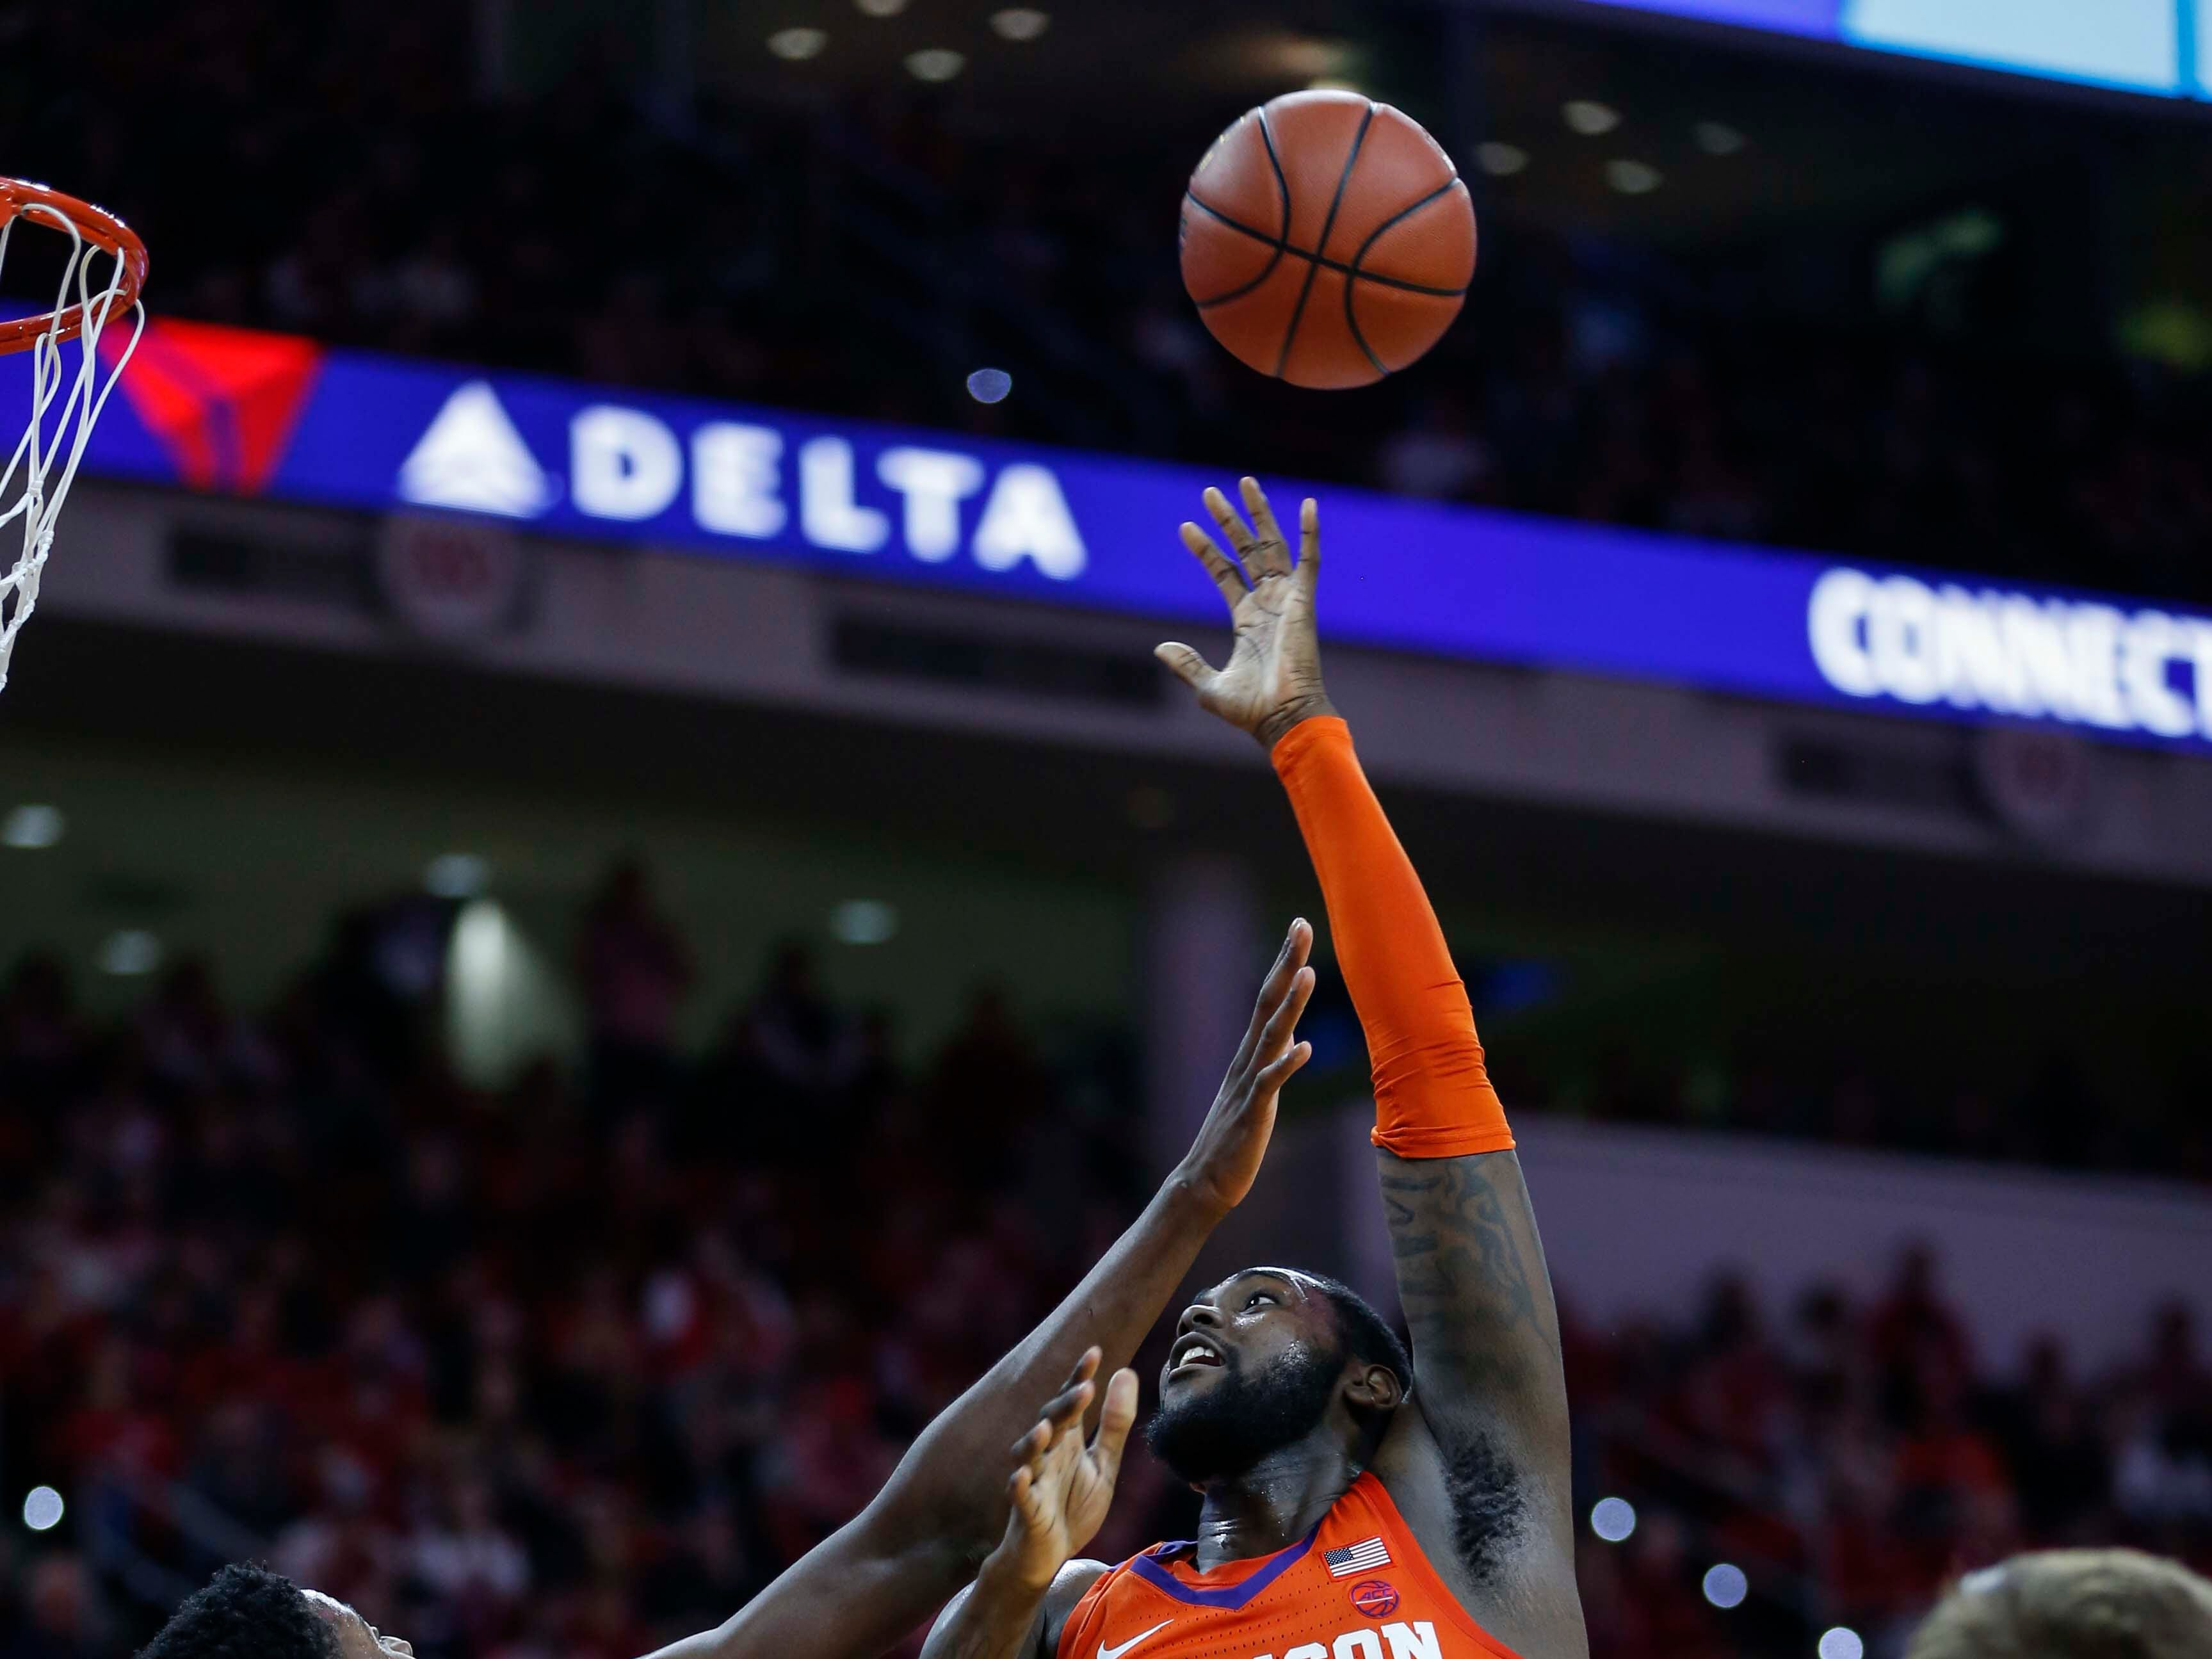 Jan 26, 2019; Raleigh, NC, USA; Clemson Tigers forward Elijah Thomas (14) shoots over North Carolina State Wolfpack forward DJ Funderburk (0) as North Carolina State Wolfpack guard Braxton Beverly (10) looks on in the second half at PNC Arena. North Carolina State Wolfpack won 69-67. Mandatory Credit: Nell Redmond-USA TODAY Sports